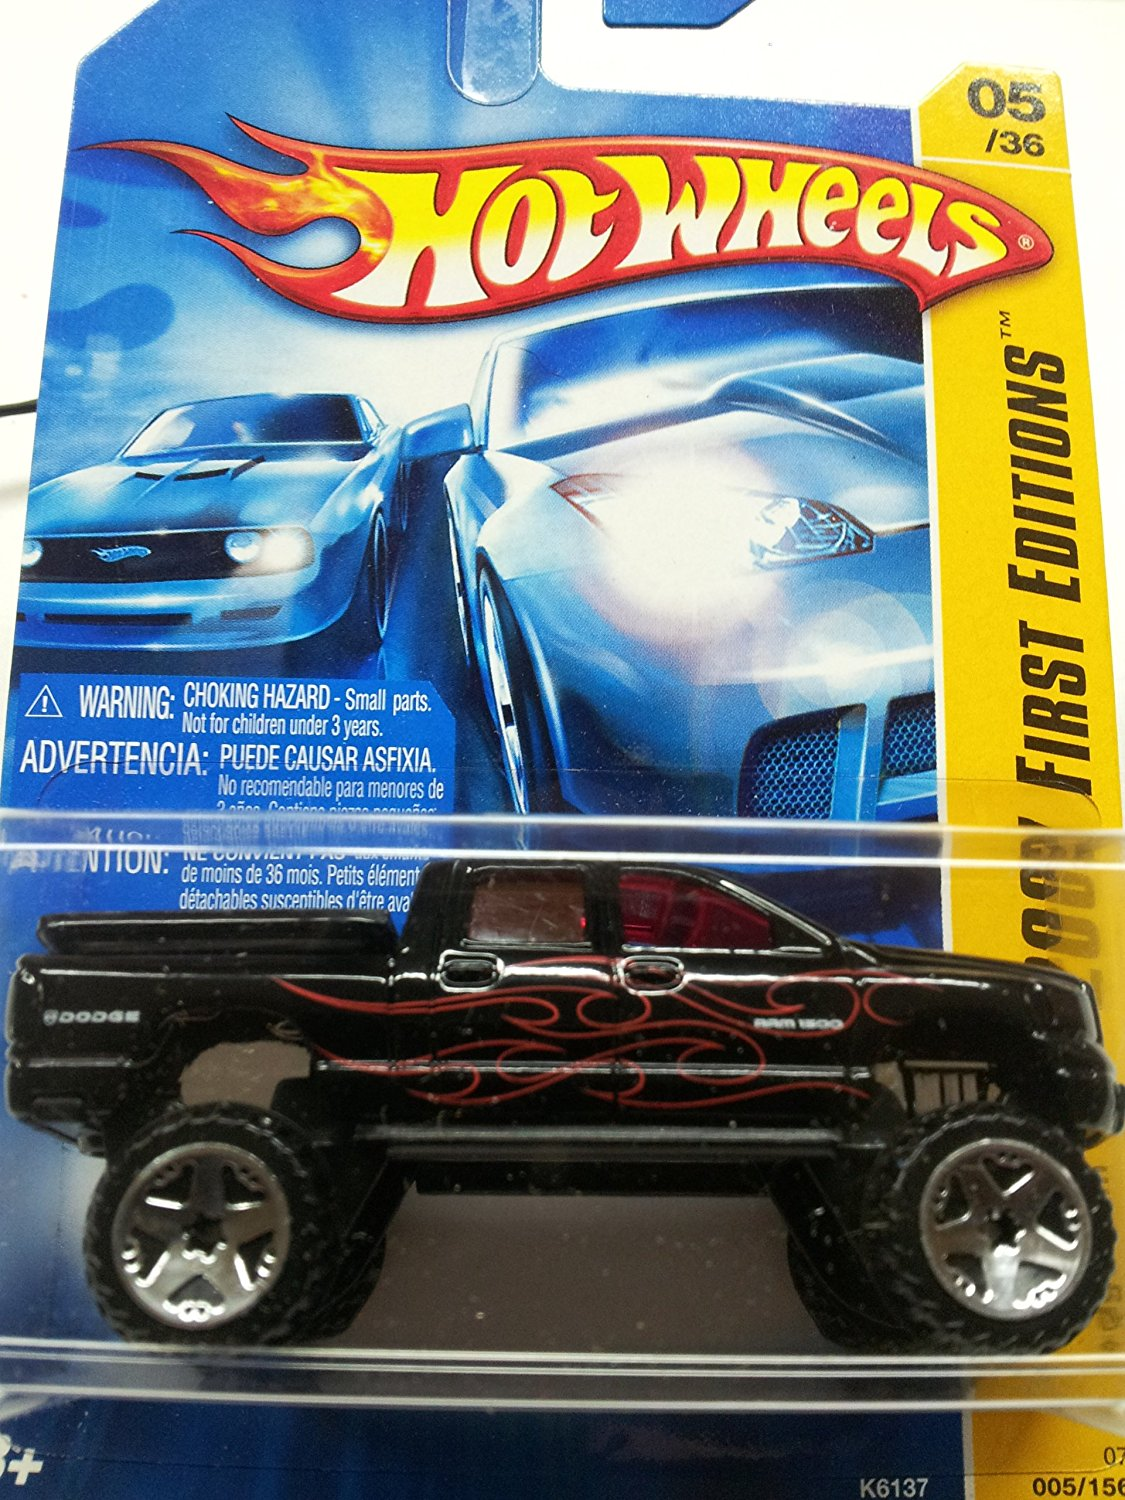 Mattel Hot Wheels 2007 New Models 1:64 Scale Black Dodge Ram 1500 Die Cast Truck #05